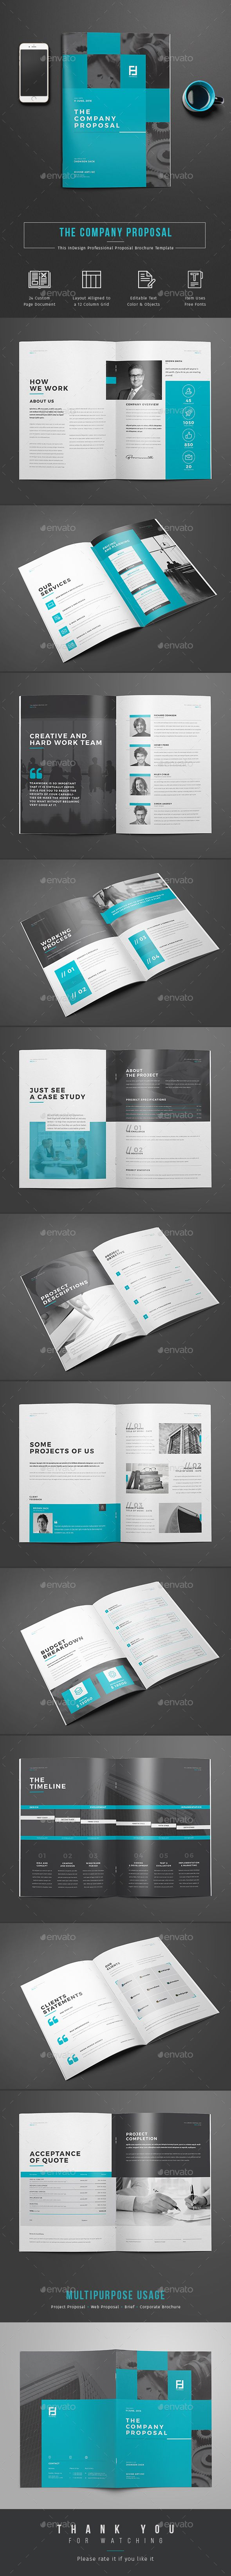 Proposal | Proposal templates, Proposals and Brochures